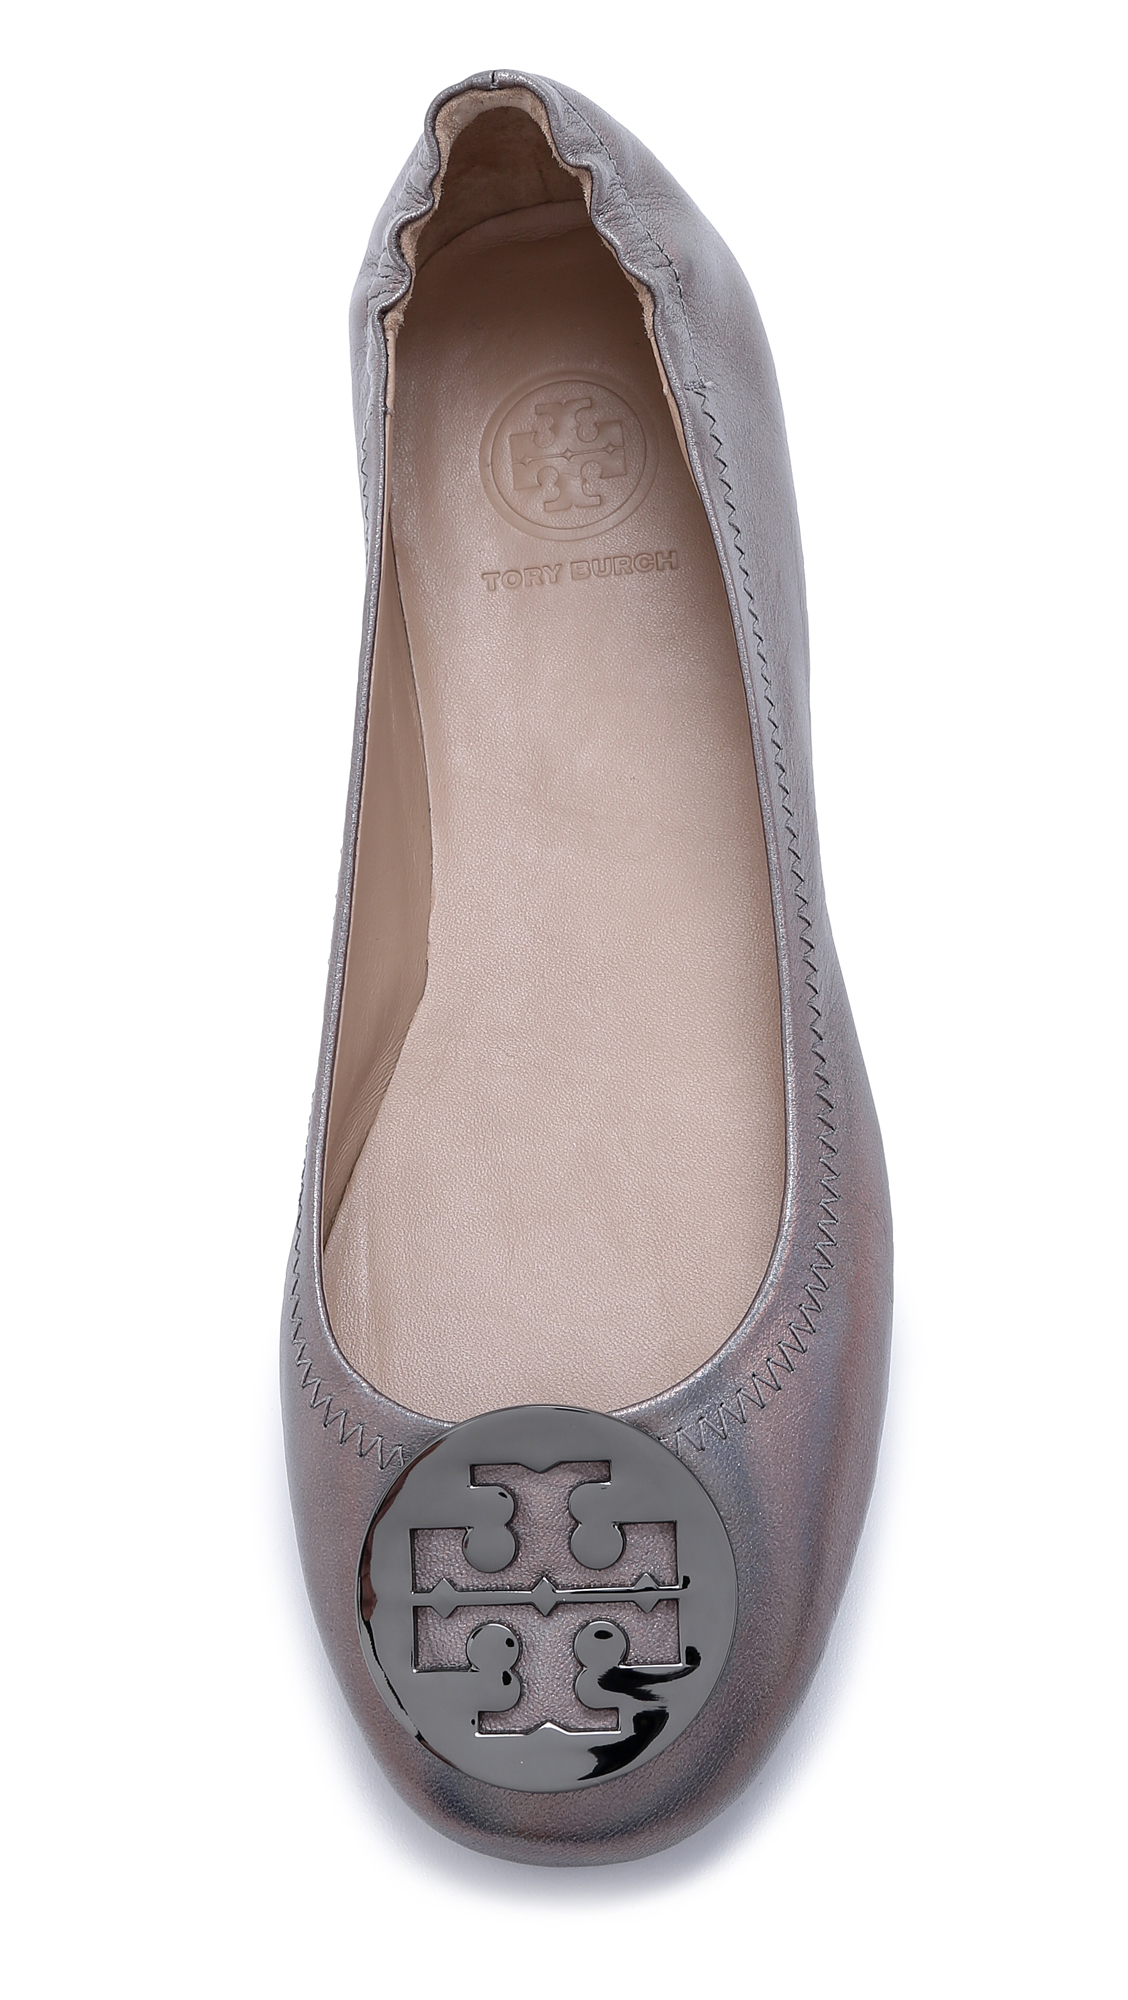 d6c16f20501 Tory Burch Minnie Travel Ballet Flats